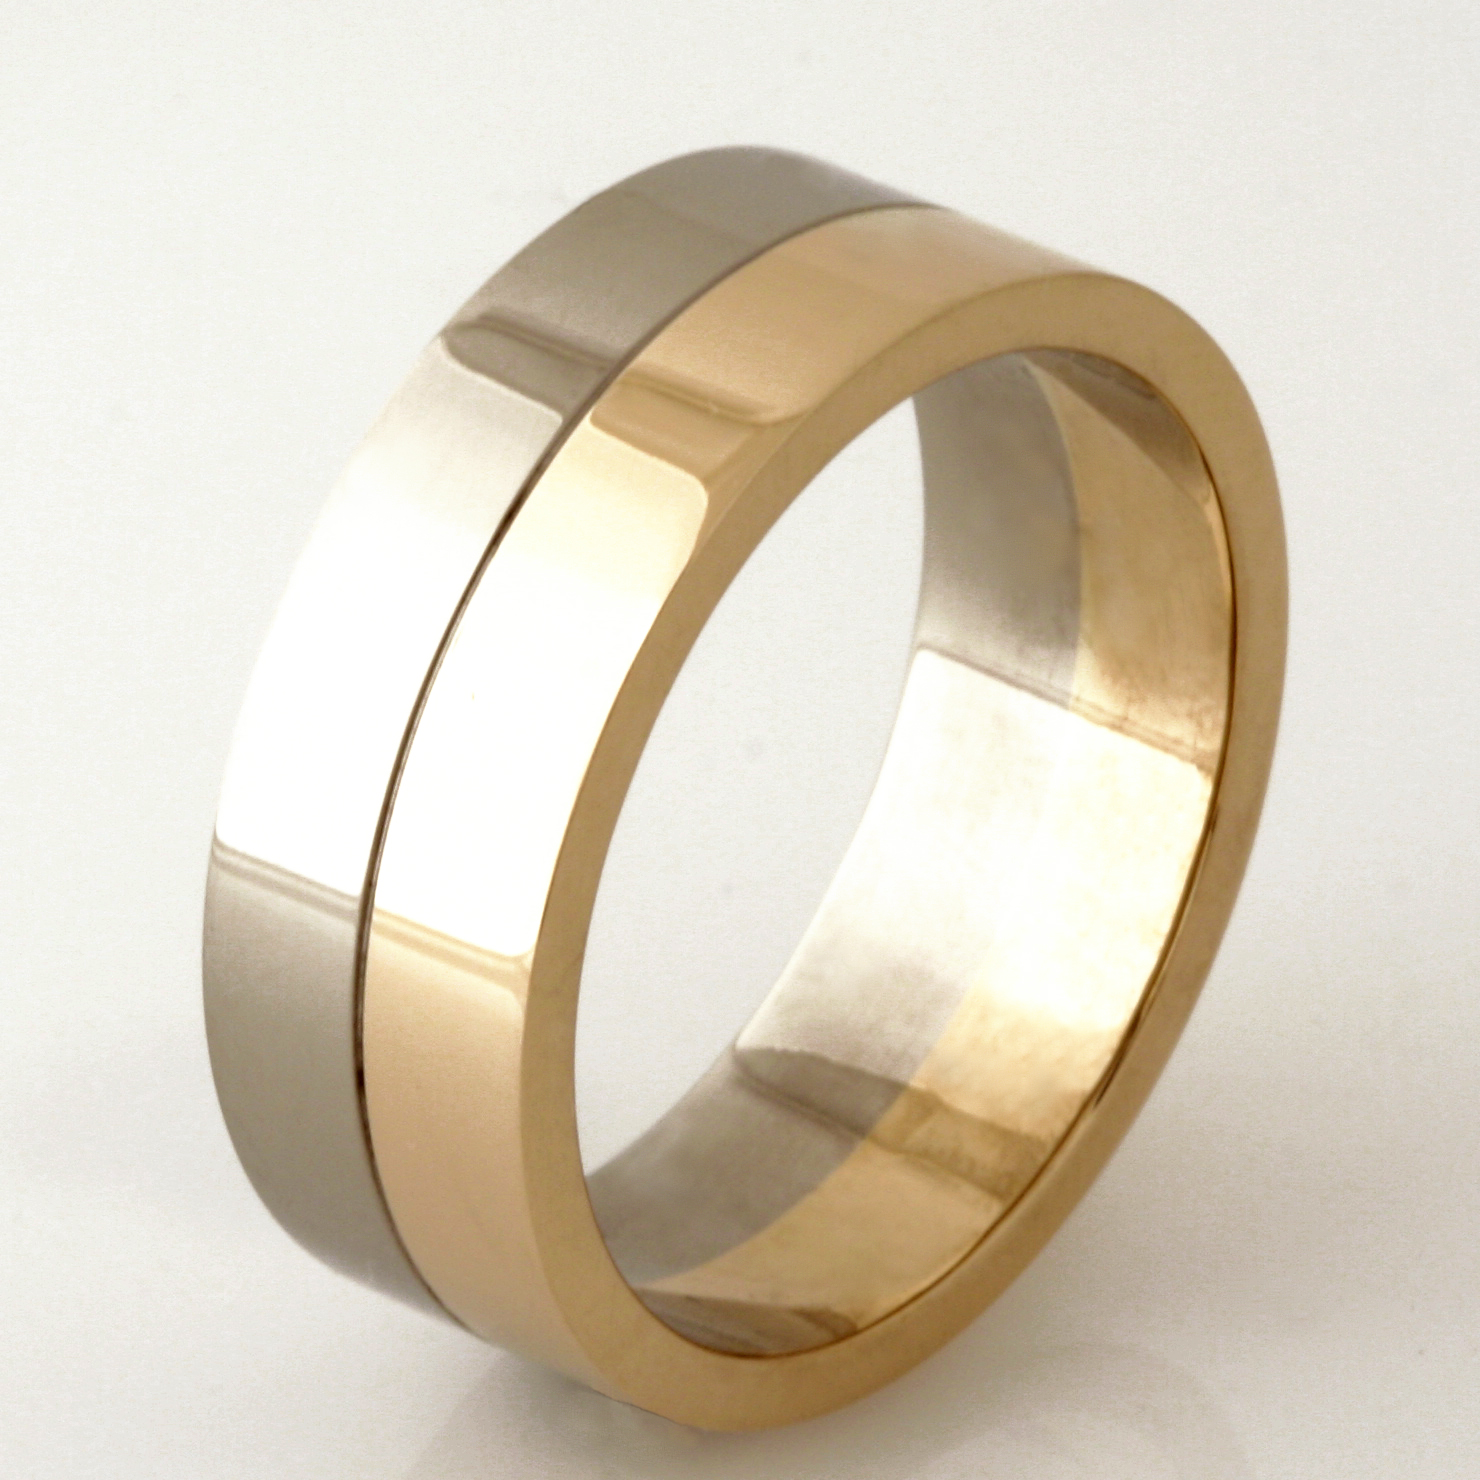 Handmade gents 9ct yellow and white gold wedding ring